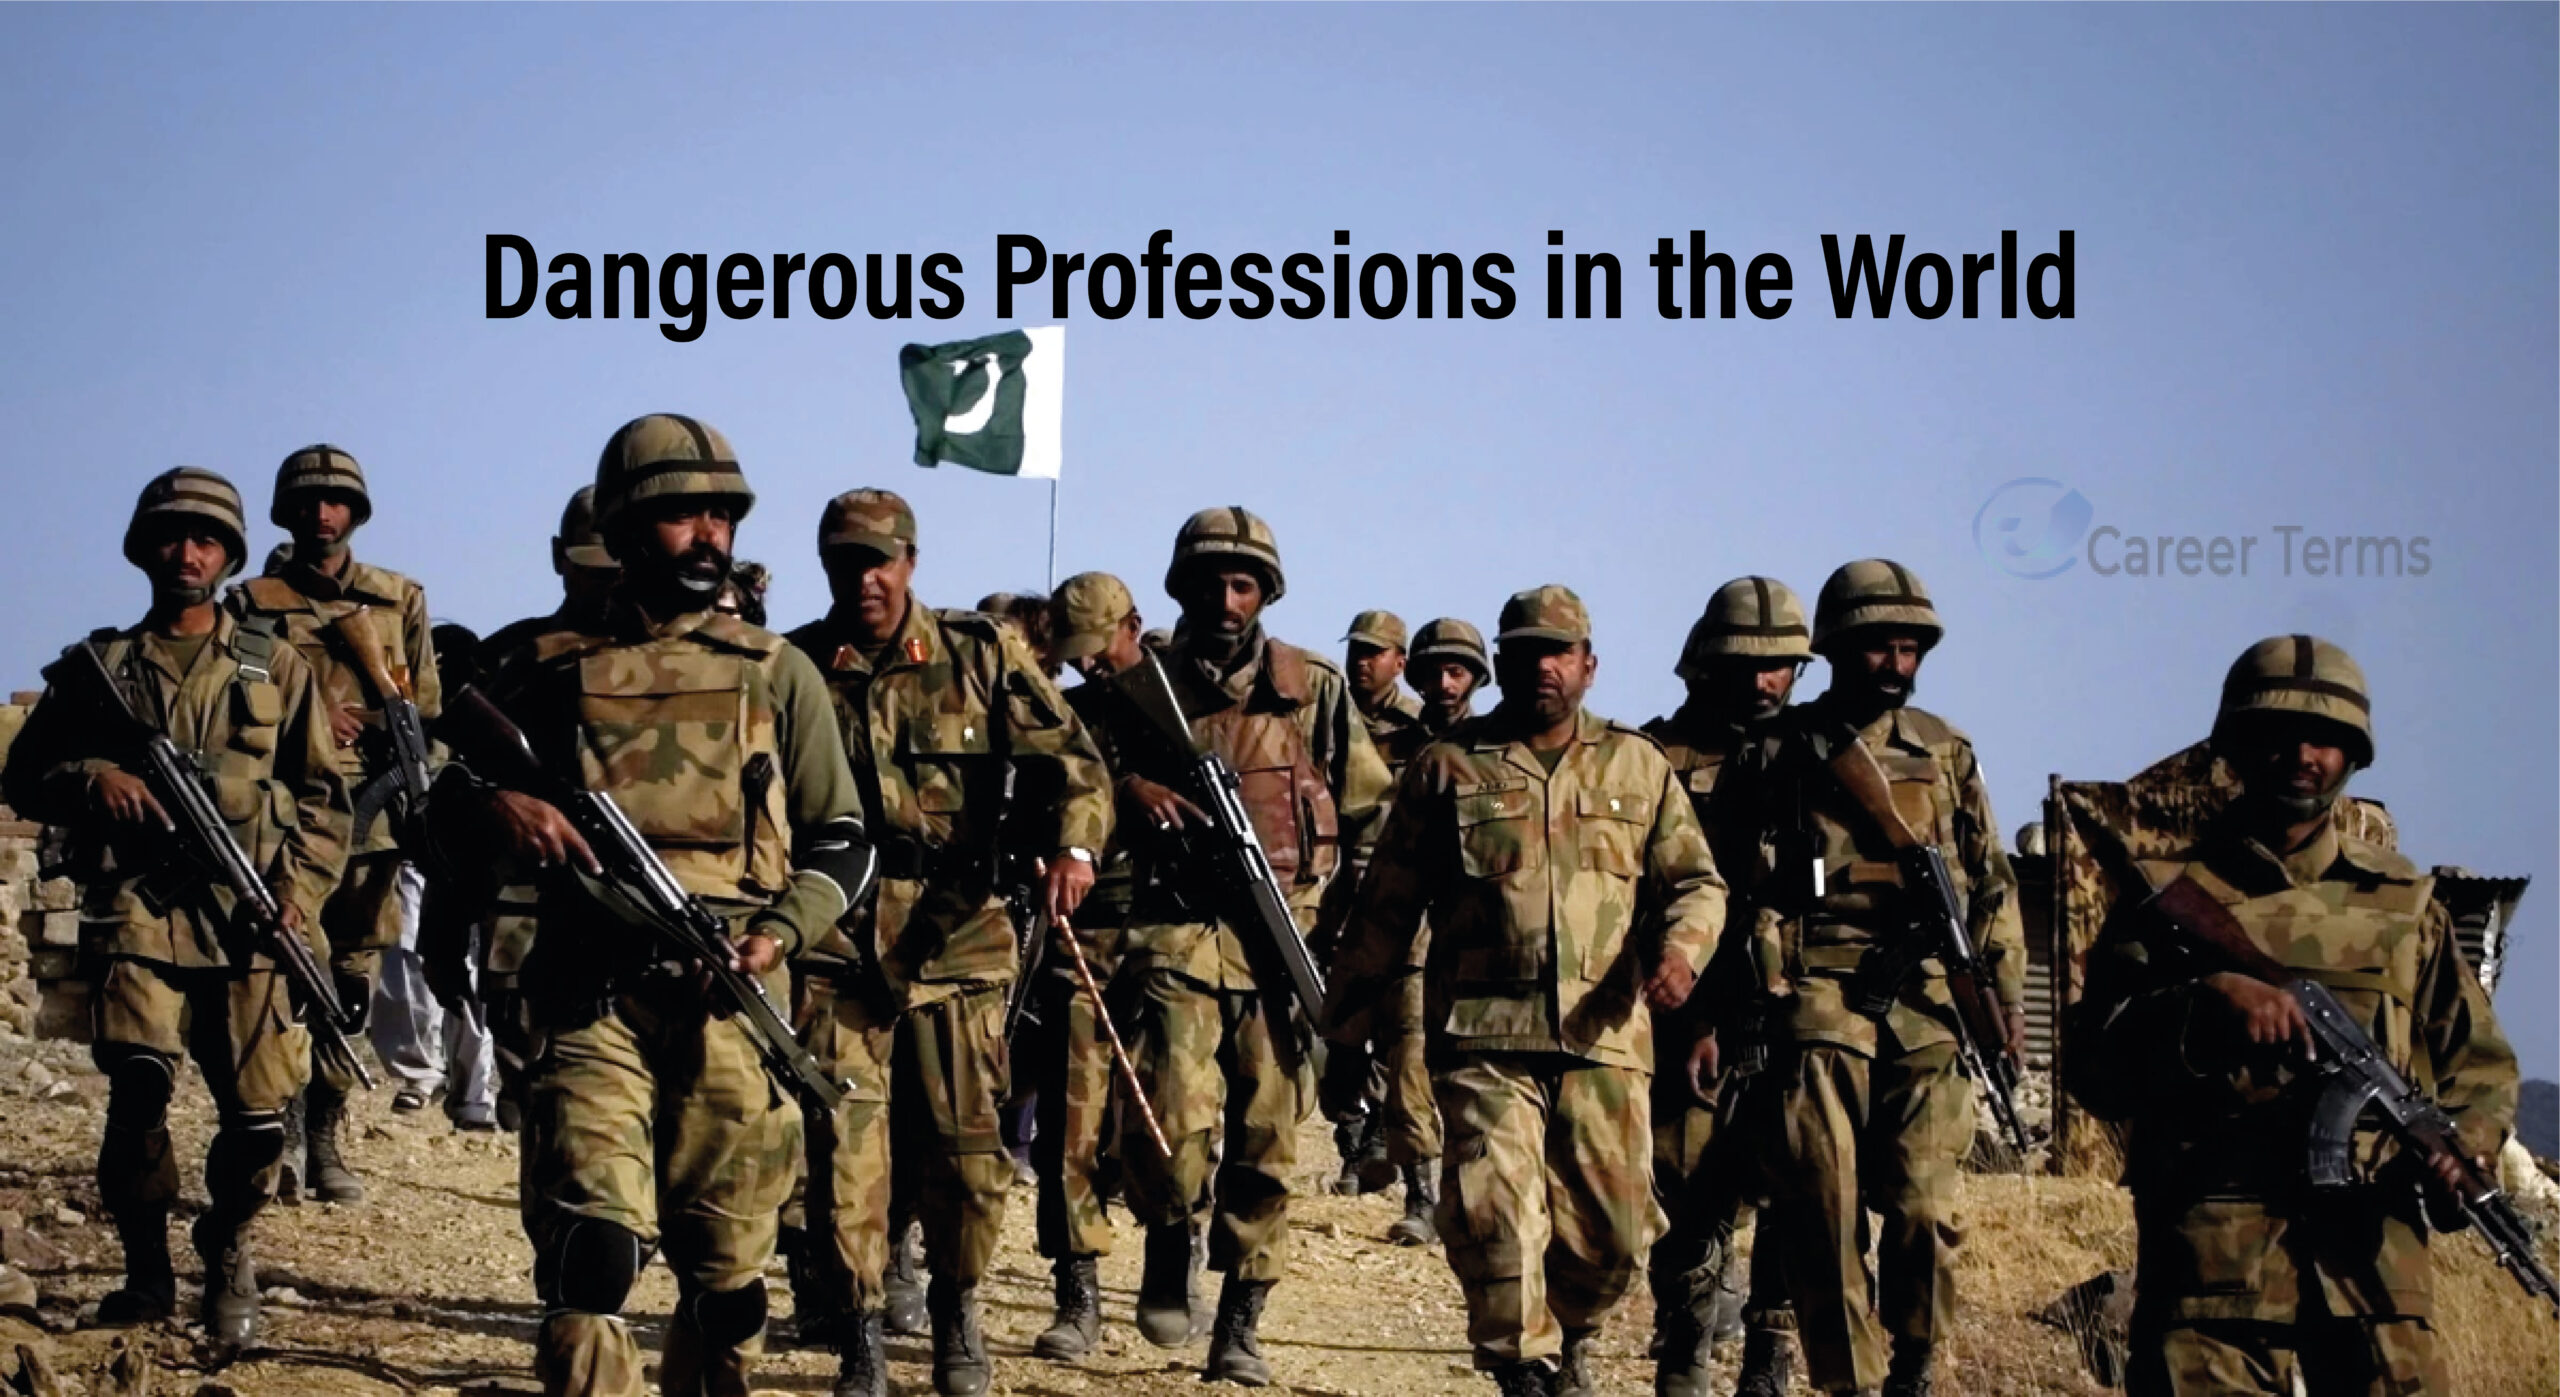 Dangerous Professions in the World